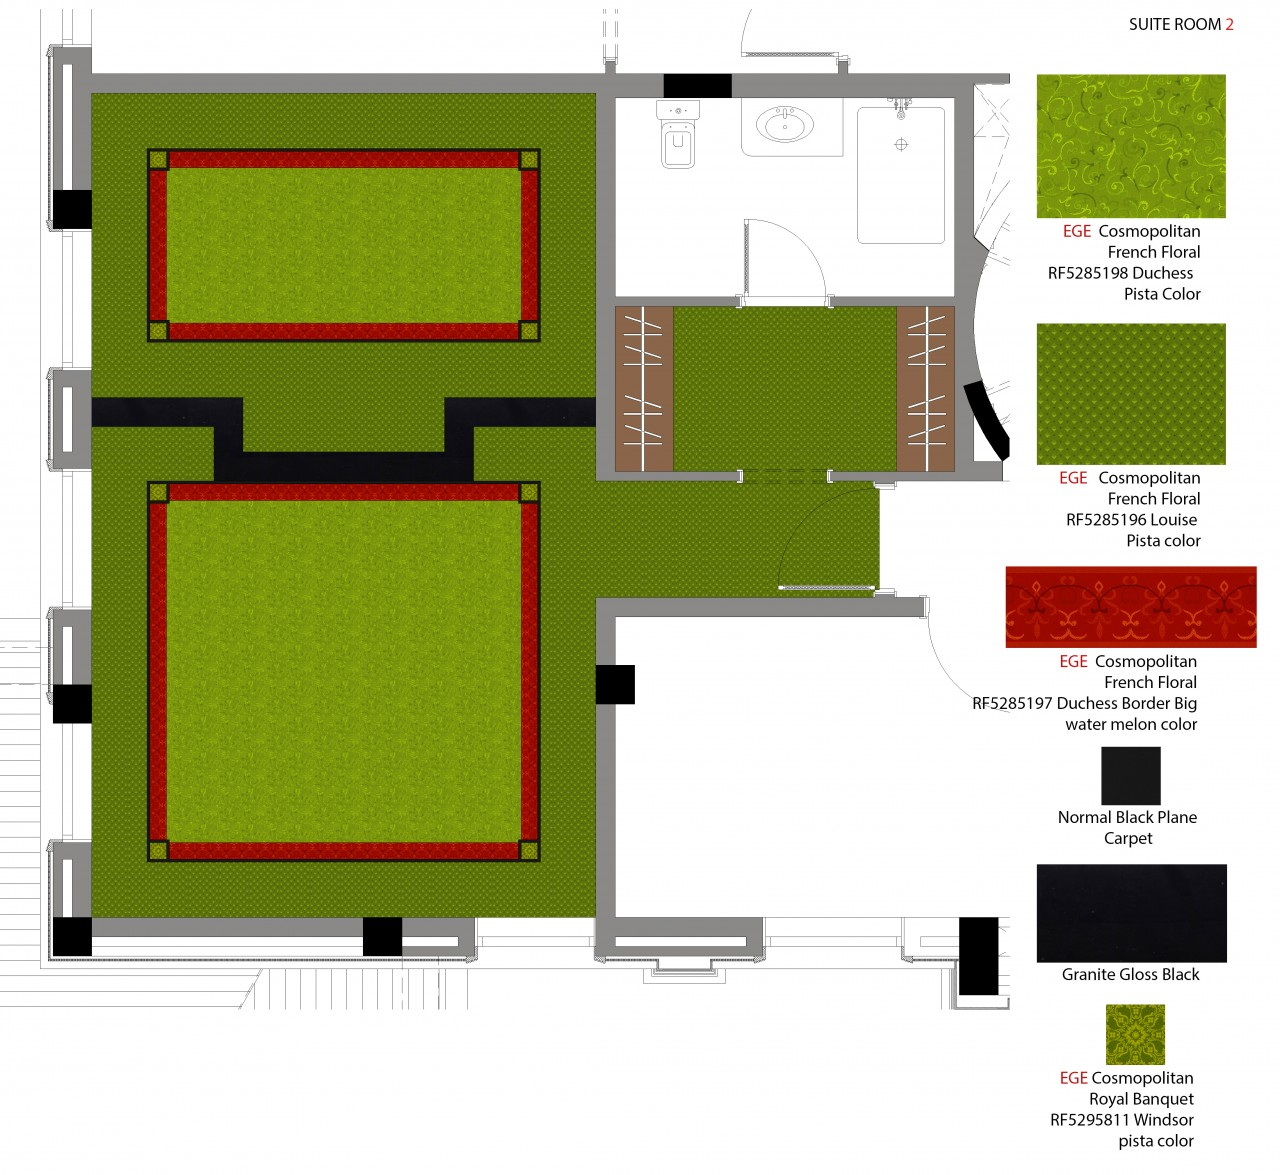 Suite 2 Carpet Plan And Details